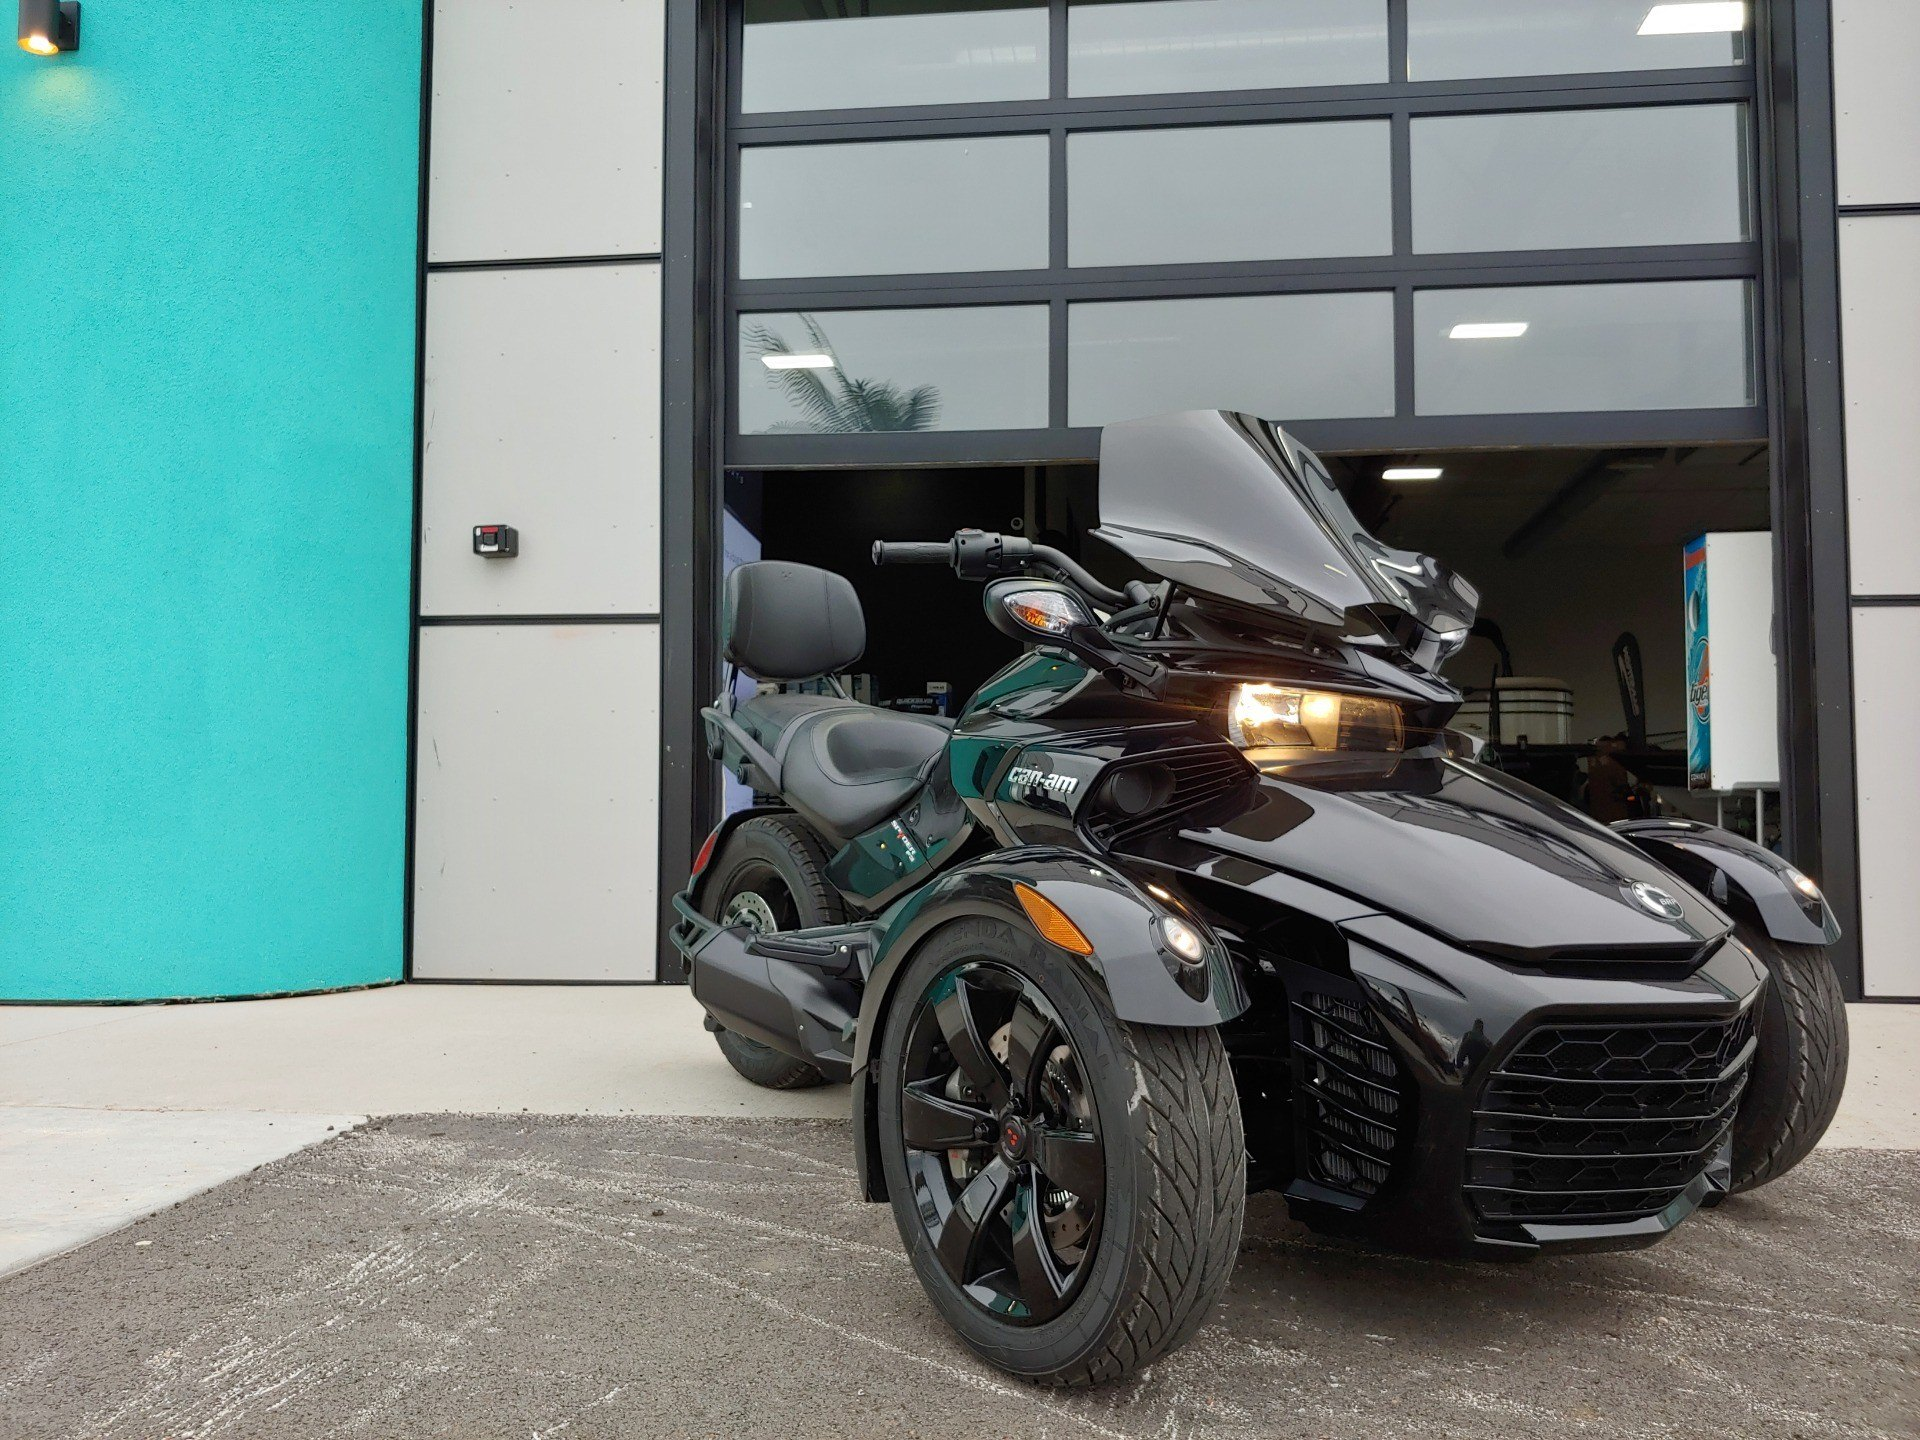 2018 Can-Am Spyder F3-S SE6 in Spearfish, South Dakota - Photo 3